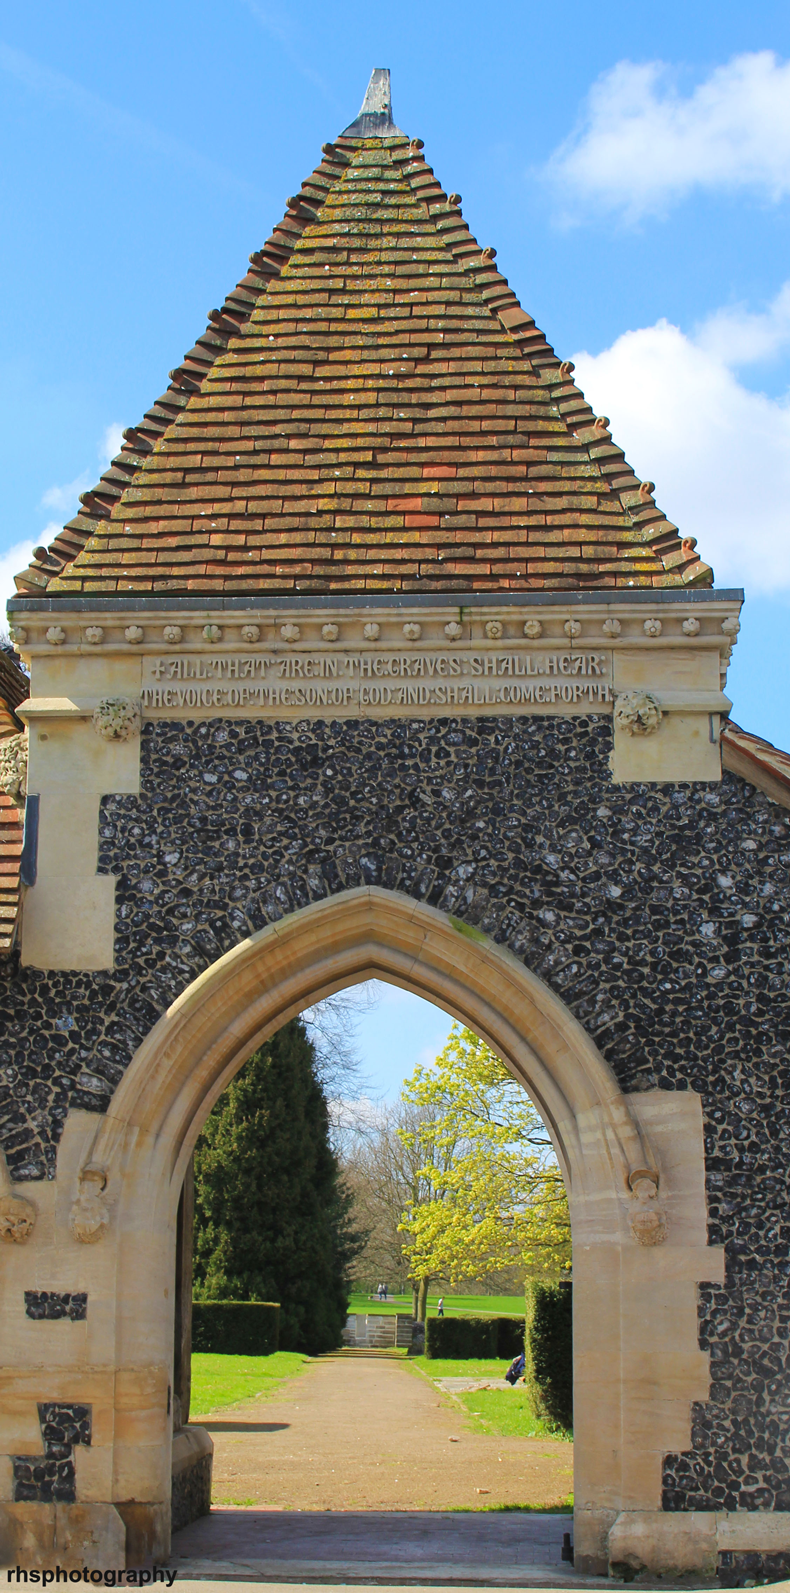 Beddington-park-church-archway